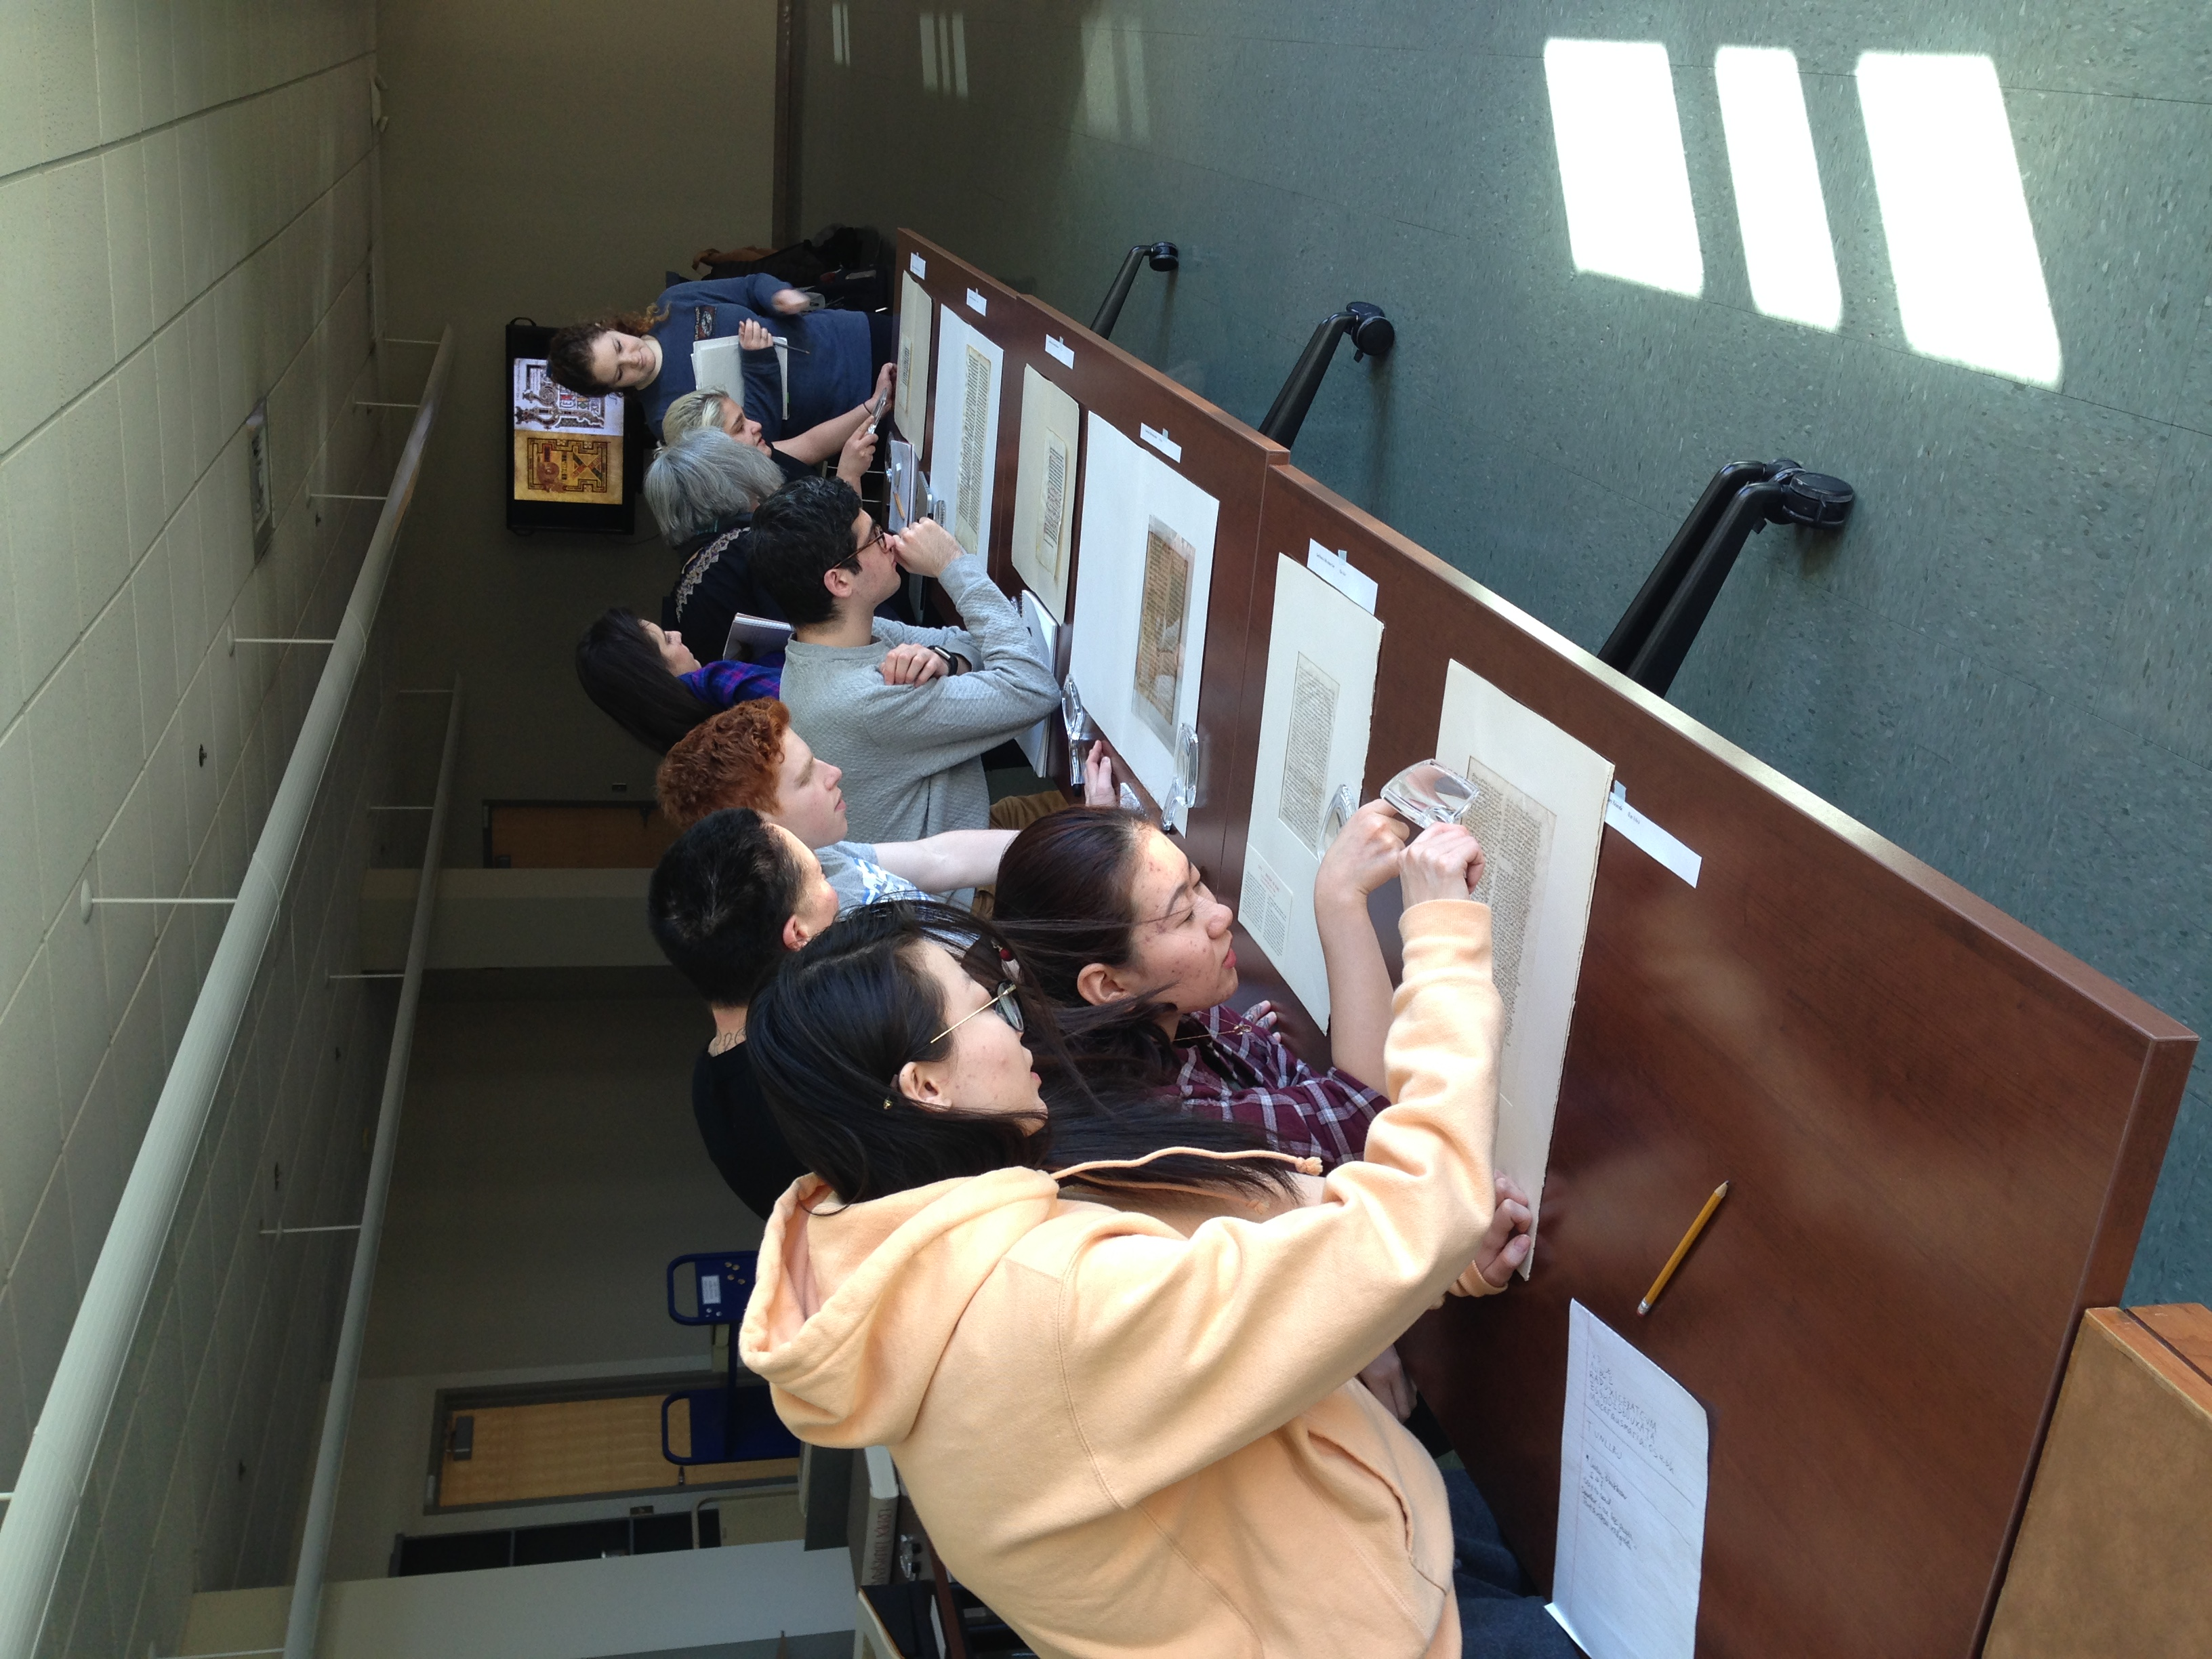 Students in a classroom studying premodern manuscripts